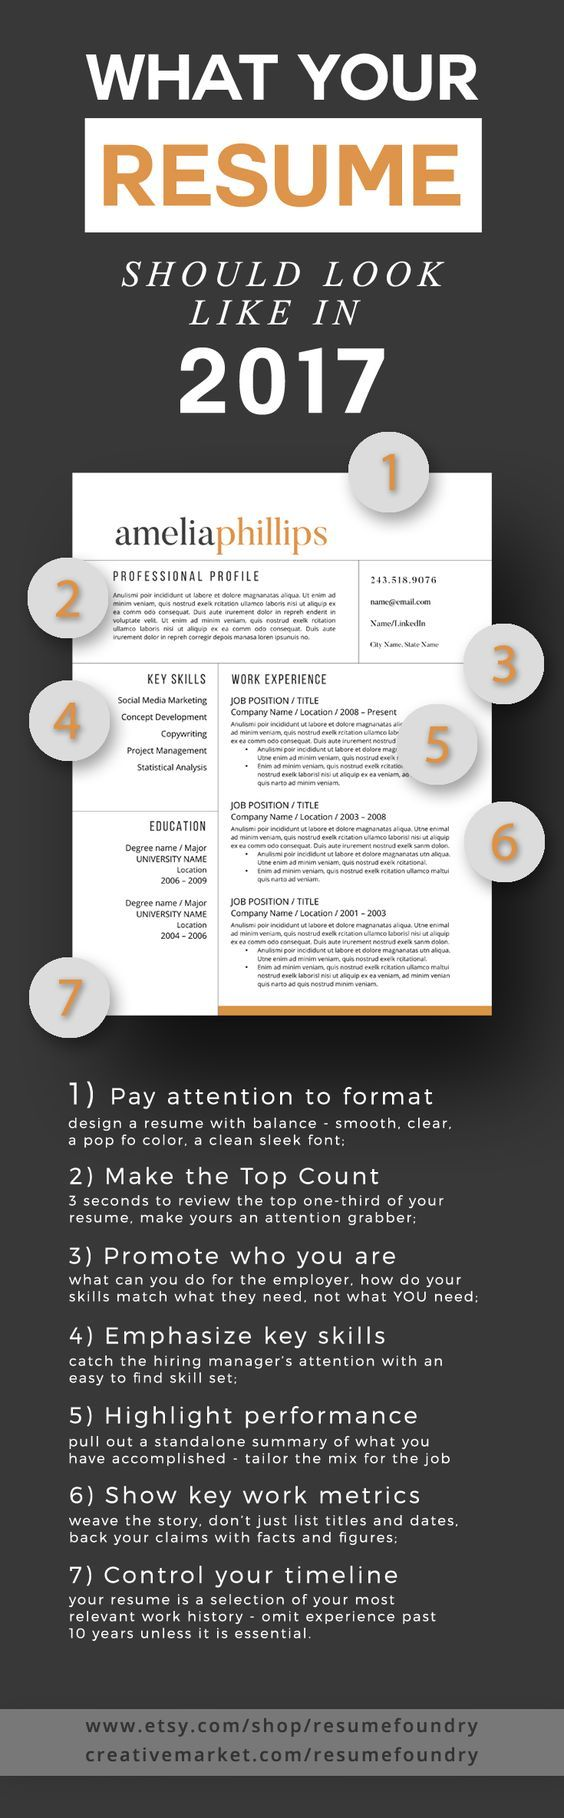 Best 25 Resume Help Ideas On Pinterest Career Help Resume